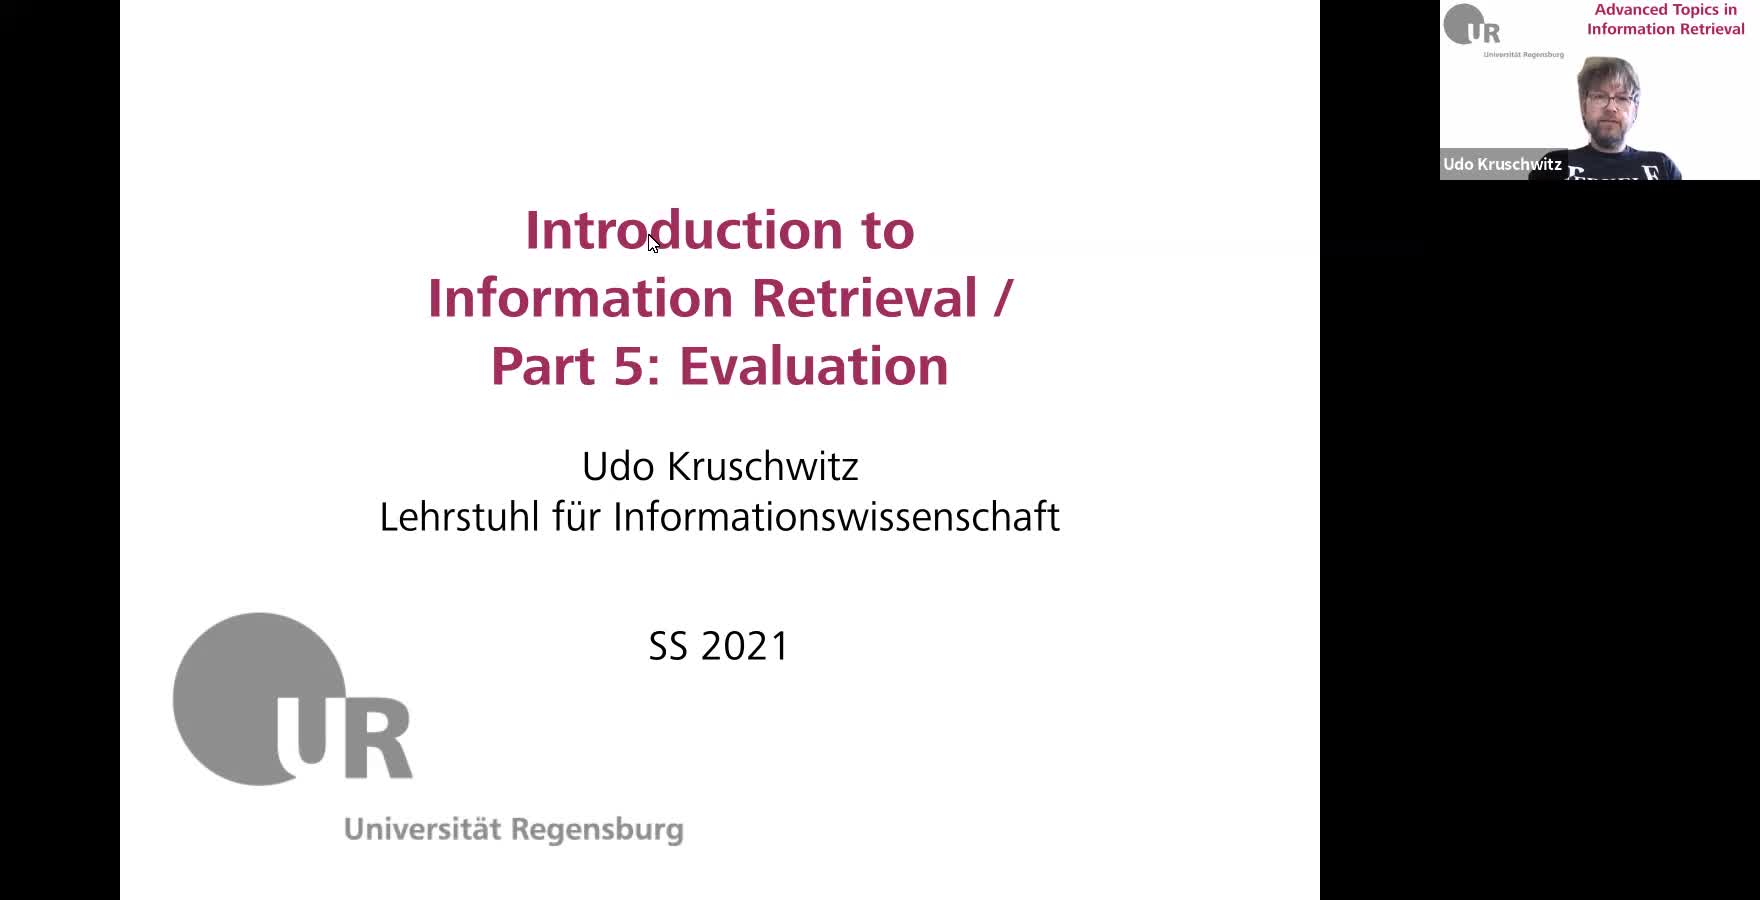 Introduction to Information Retrieval - Lecture 5 (Evaluation)